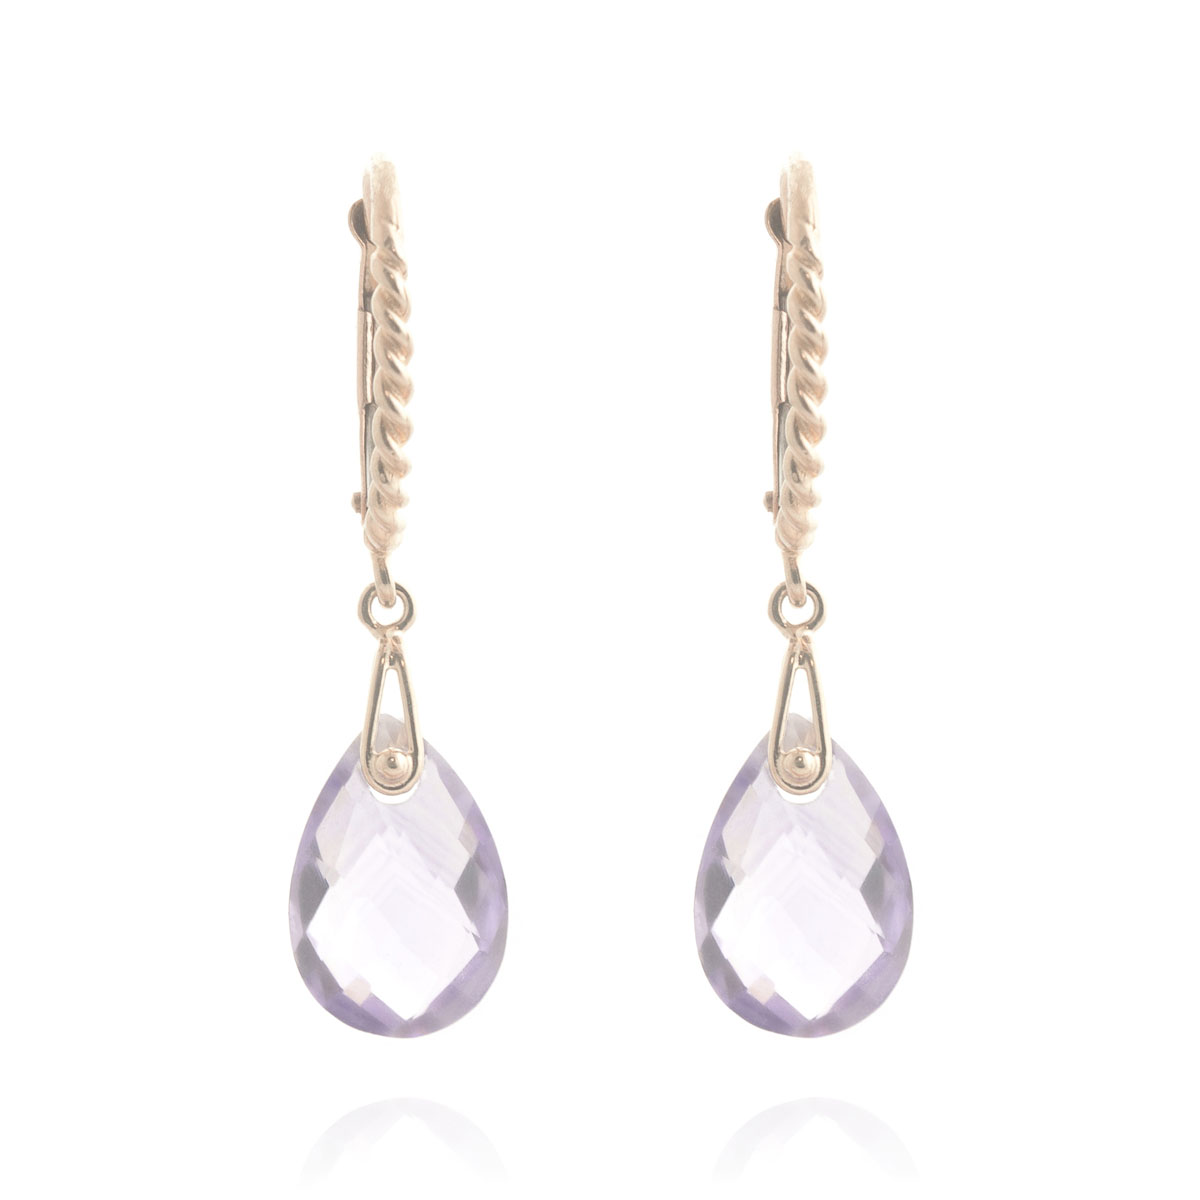 Amethyst Plait Stem Drop Earrings 6 ctw in 9ct Rose Gold